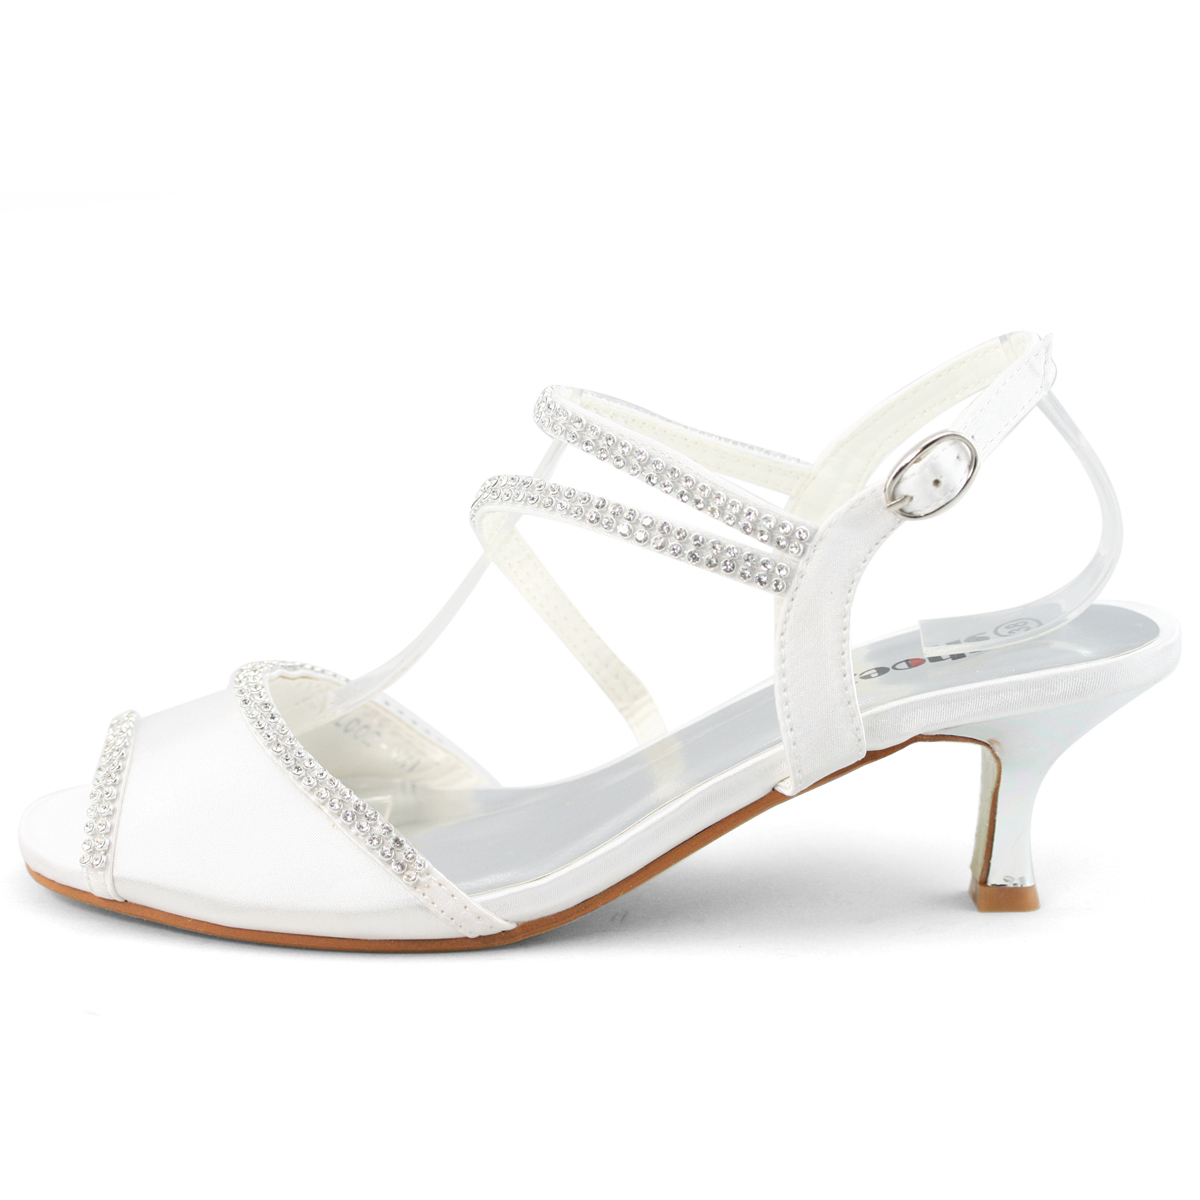 Clothing, Shoes, Accessories > Wedding > Bridal Shoes